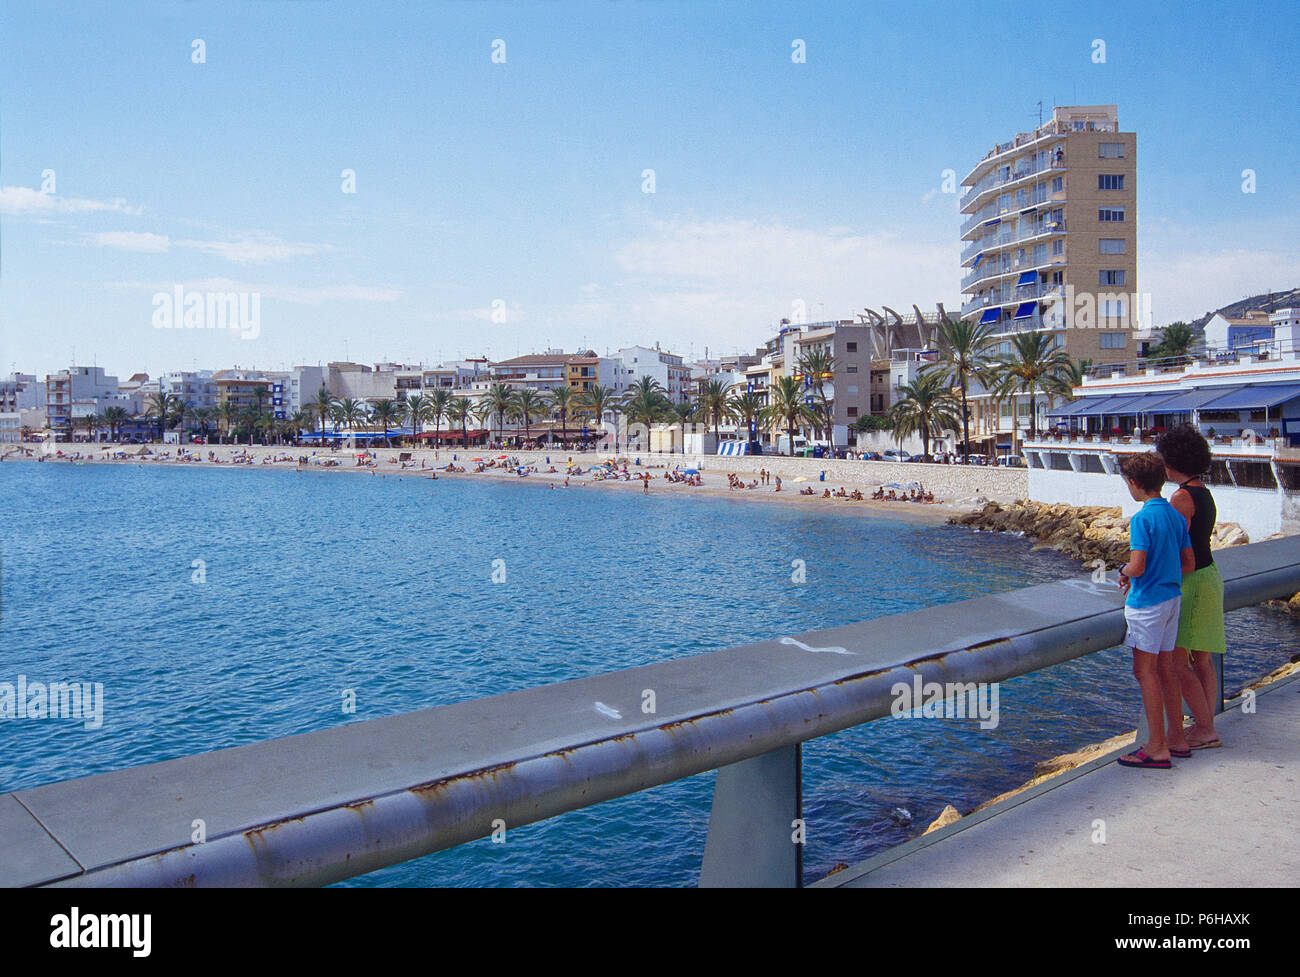 Viewpoint over the sea. Javea, Alicante province, Comunidad Valenciana, Spain. - Stock Image